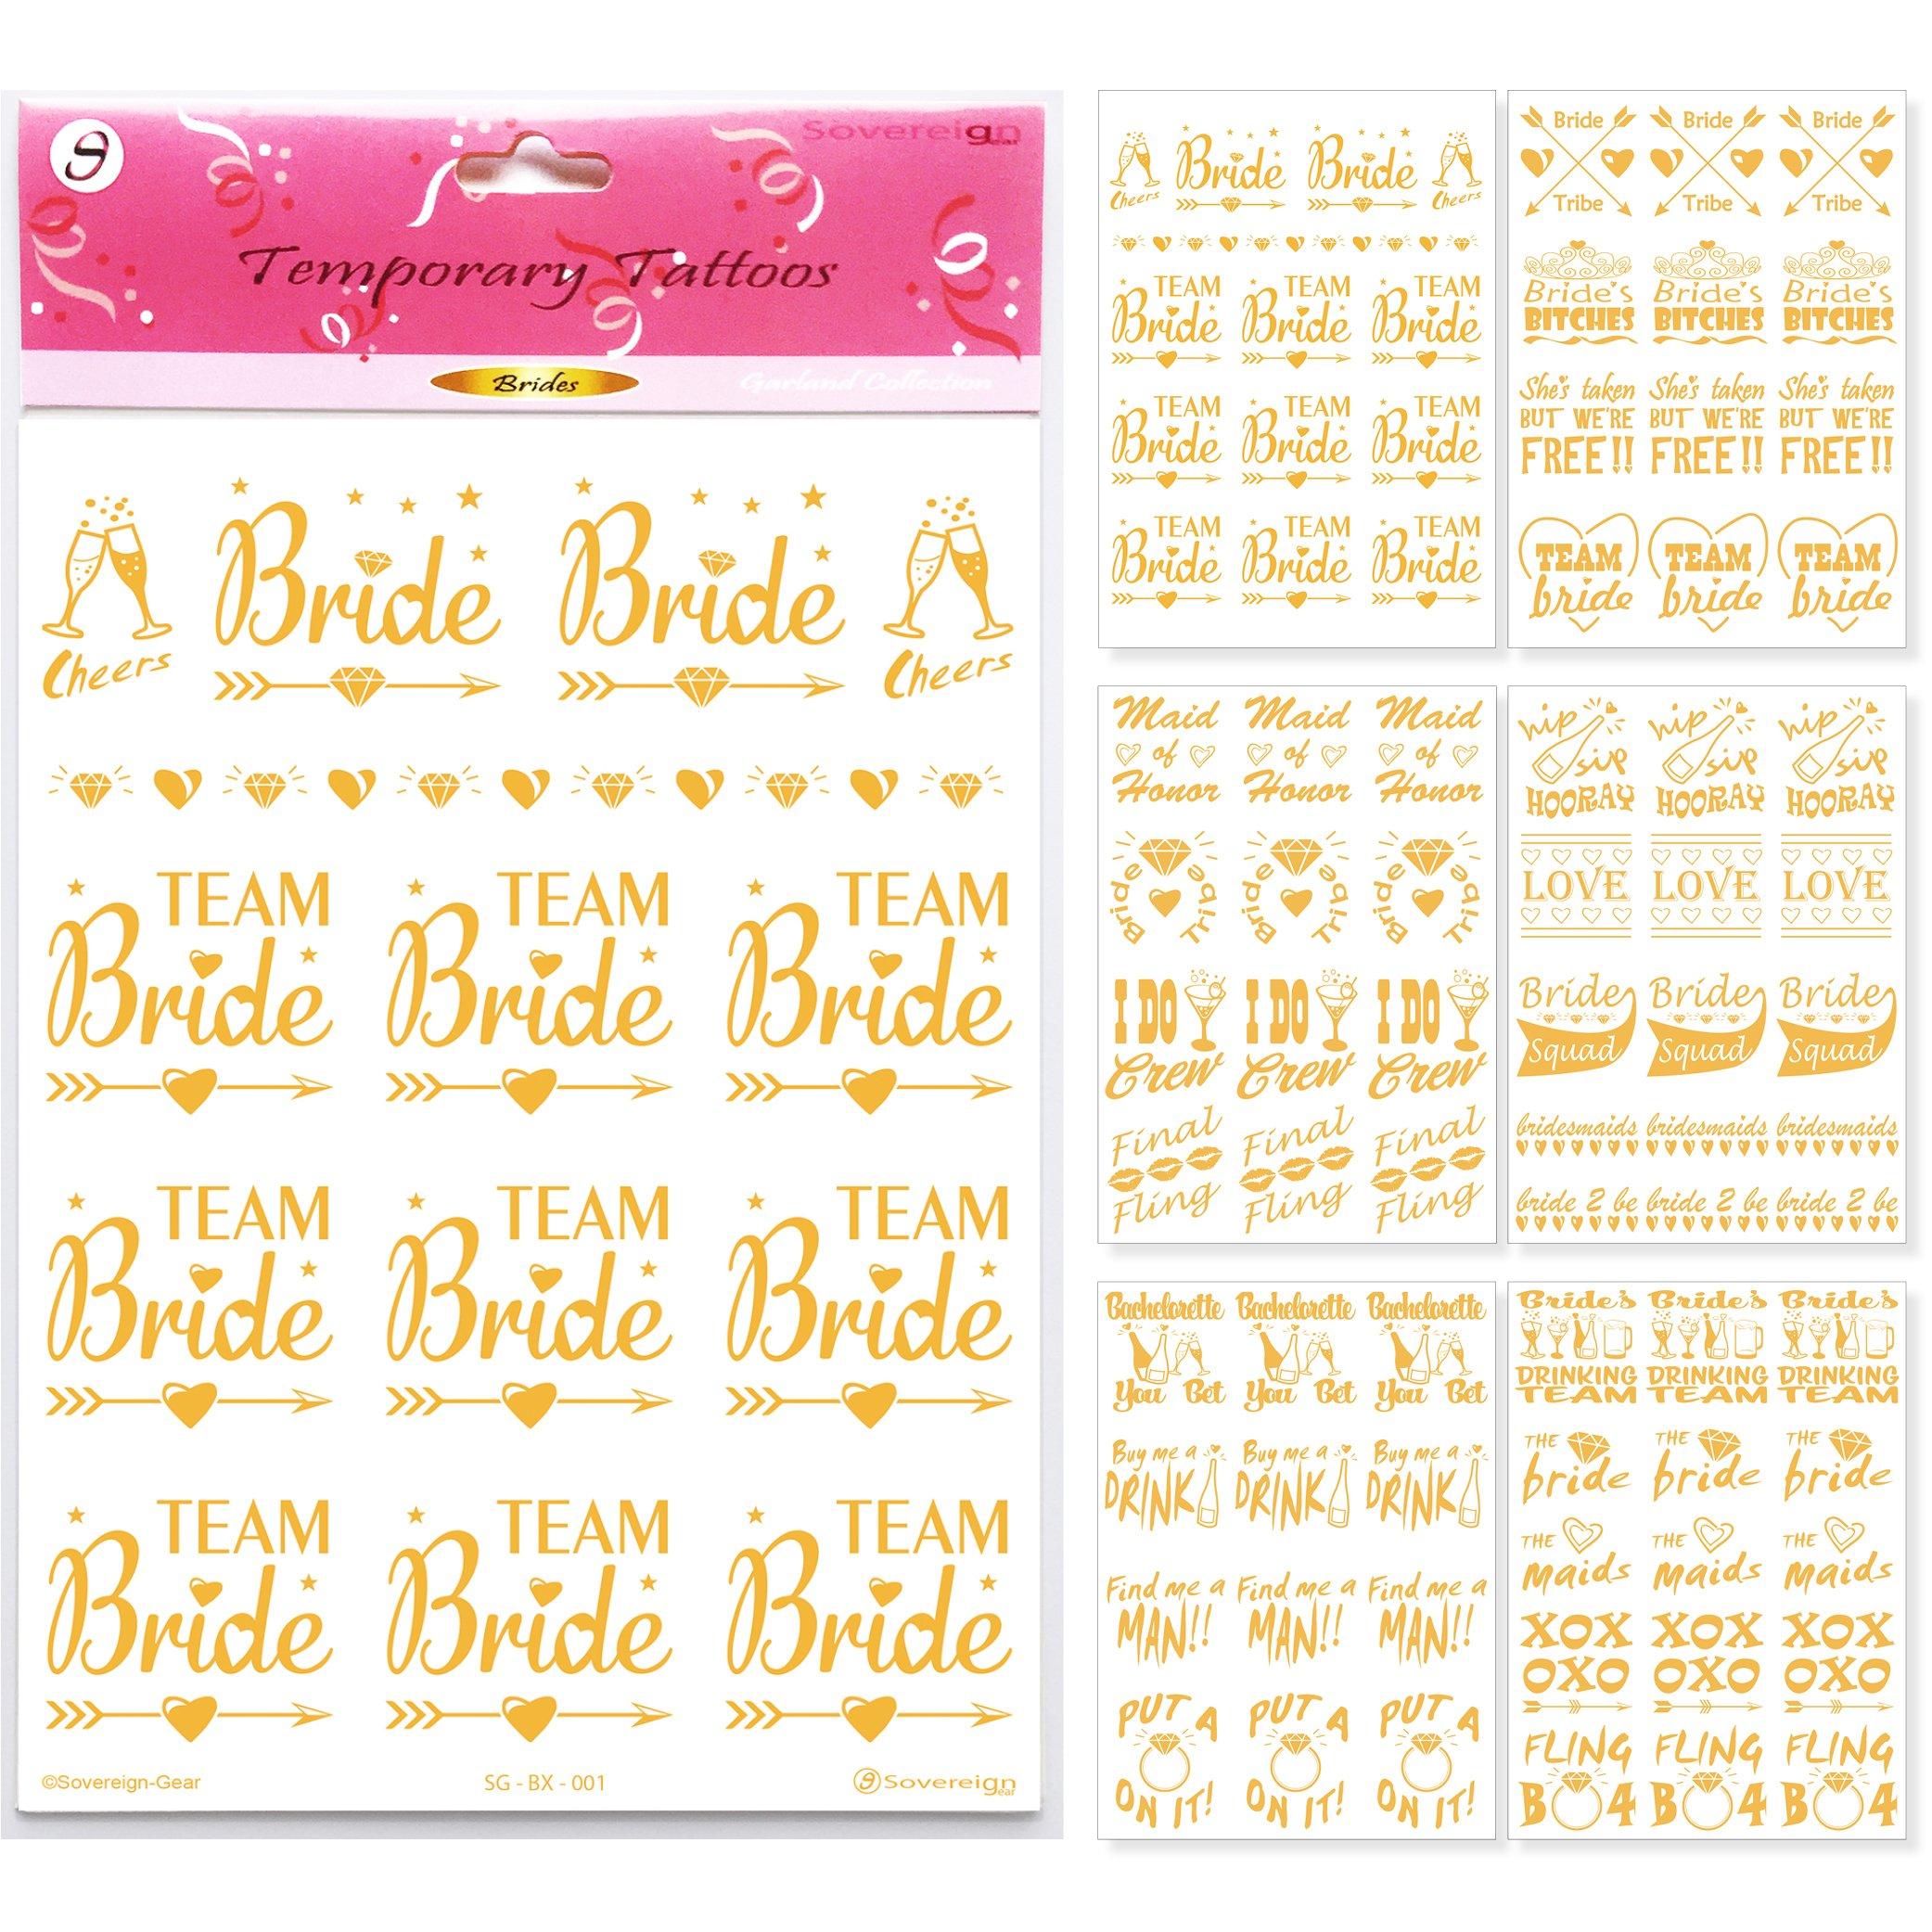 6 gold team bride tattoos hen party bride to be